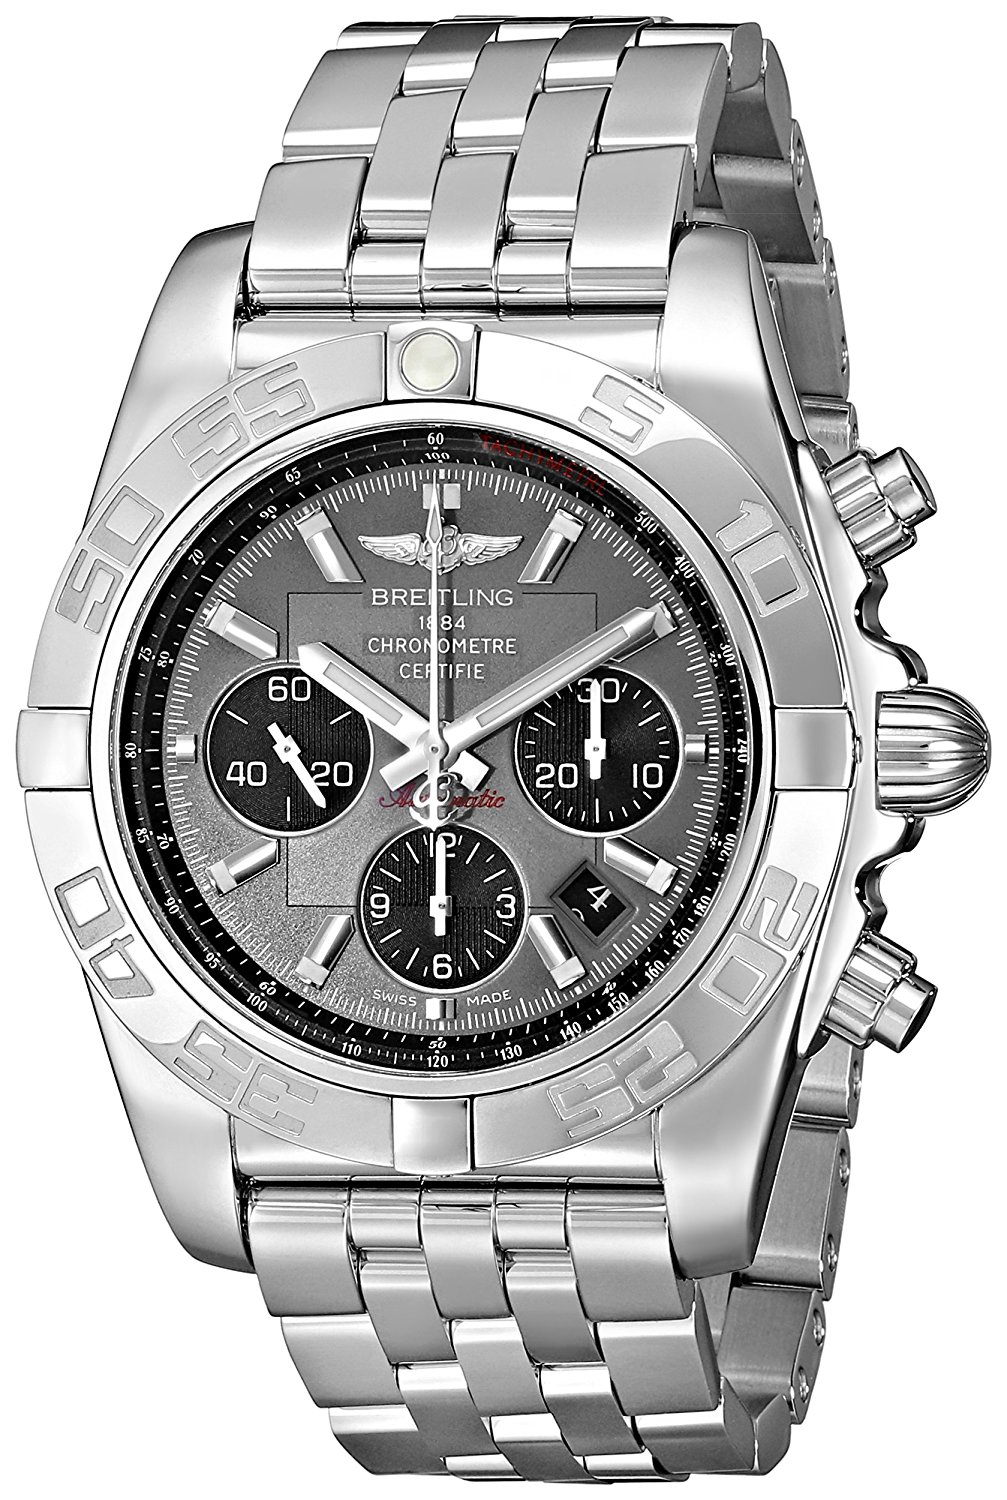 7b37836e8ce Breitling Men s AB011012 F546 Chronomat B01 Grey Chronograph Dial Watch